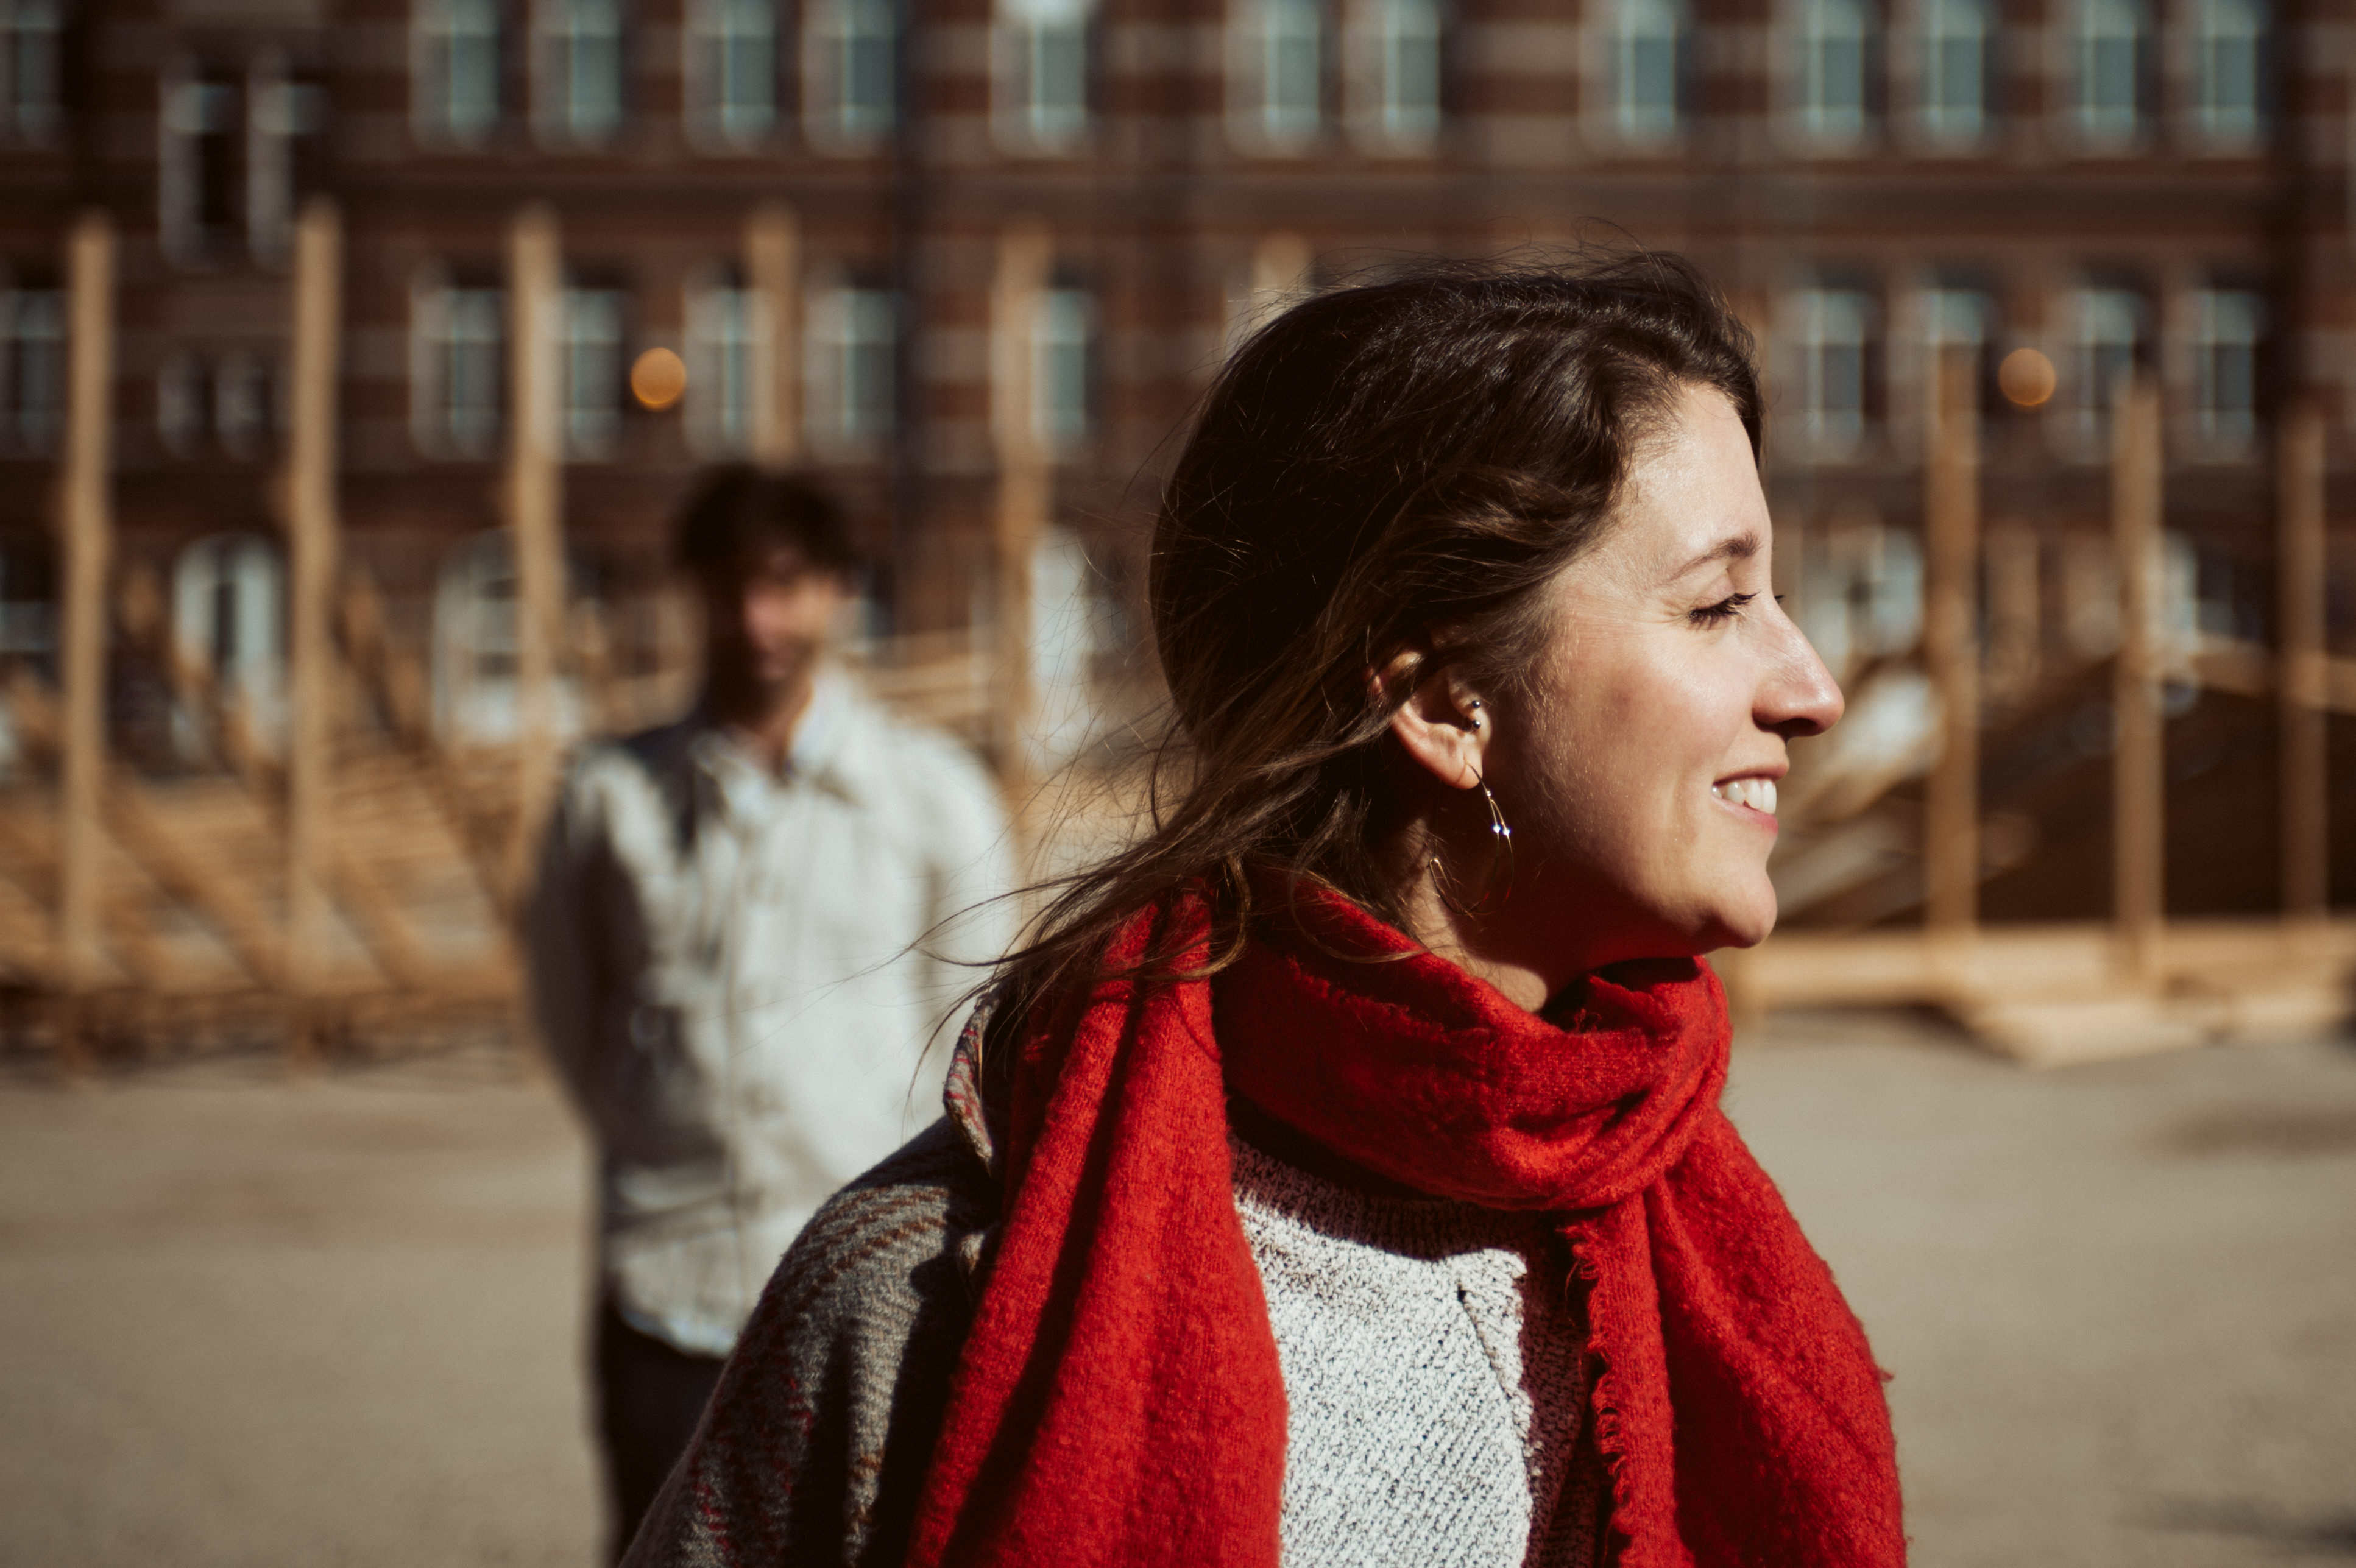 Brussels Engagement Session - girlfriend staring at the sun, he's int he background